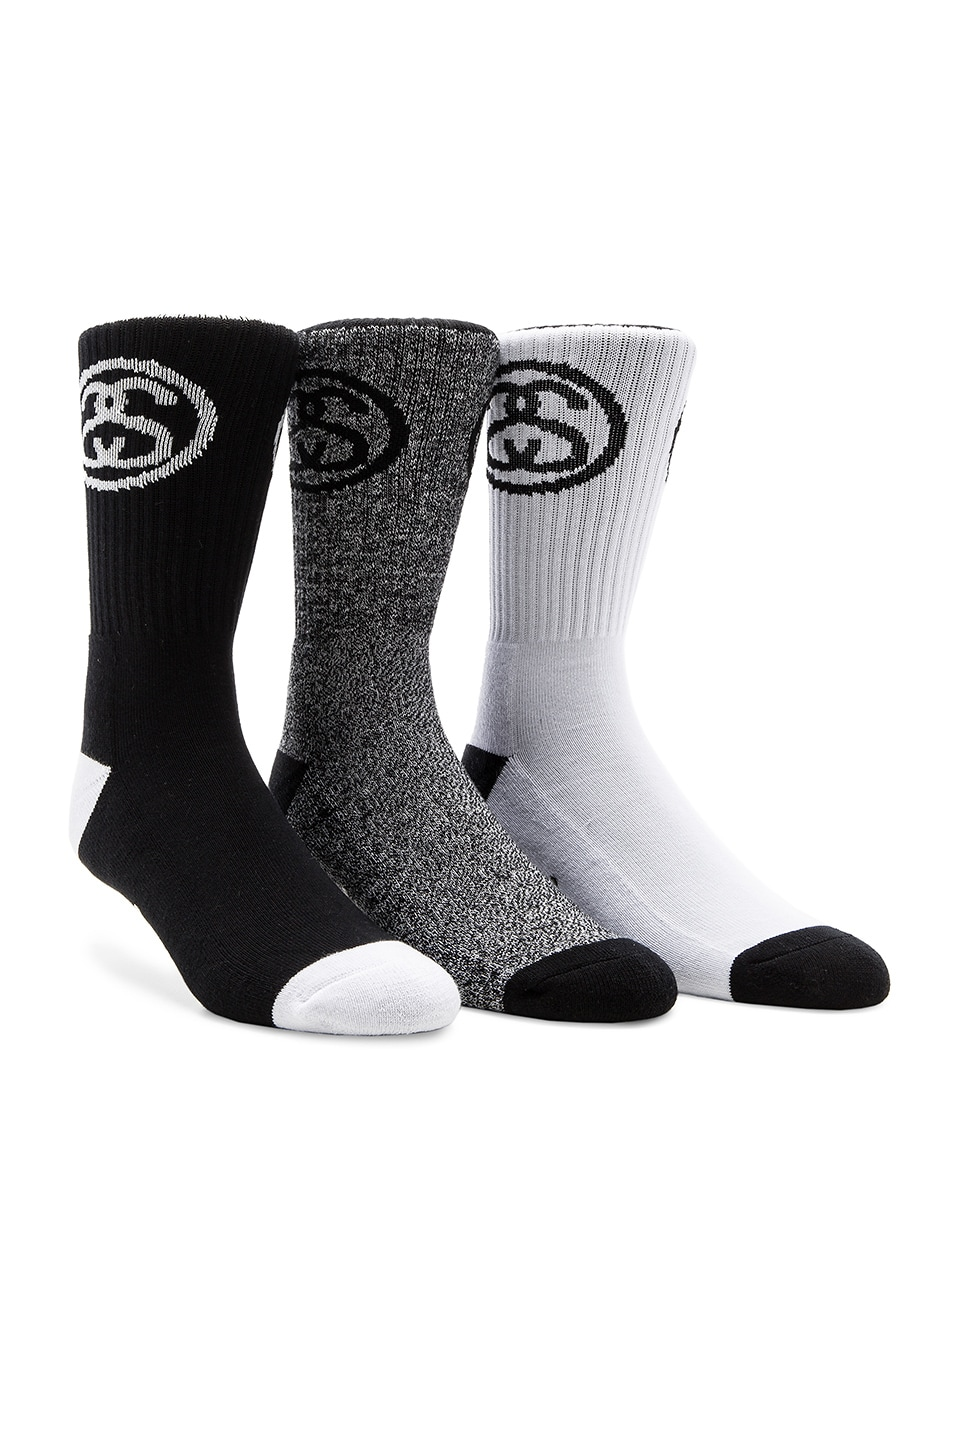 3-Pack SS Link Premium Socks by Stussy